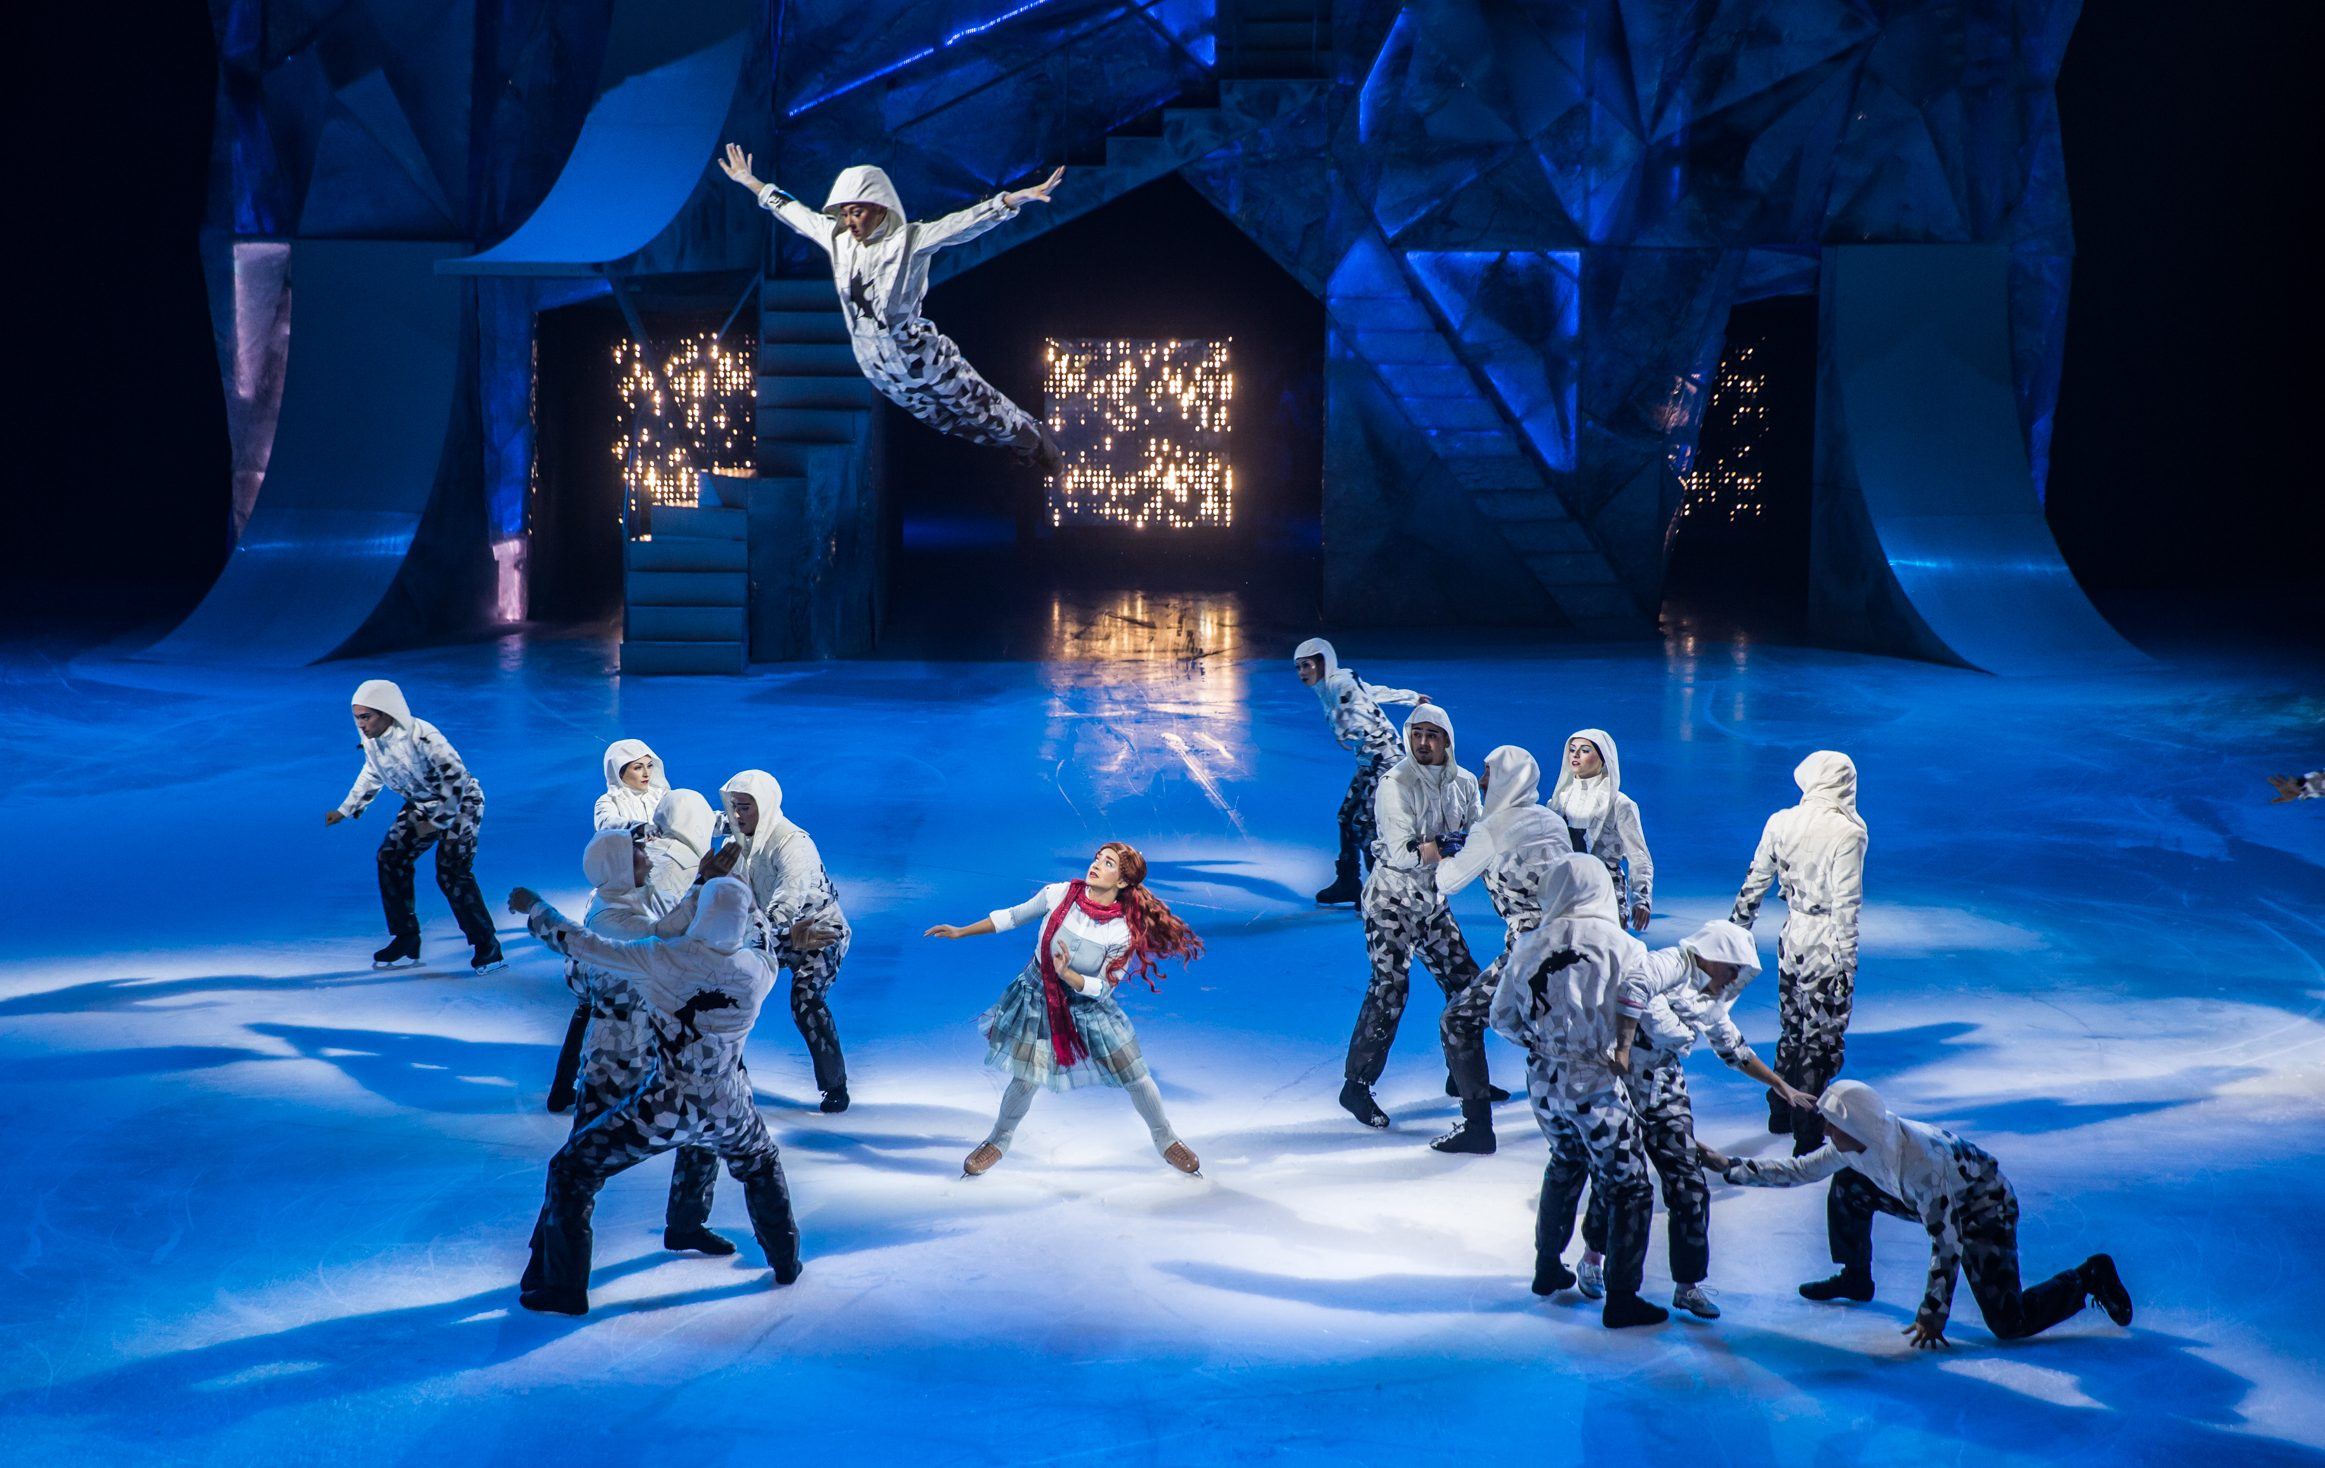 Ice-borne and airborne, Cirque du Soleil's 'Crystal' aims high.